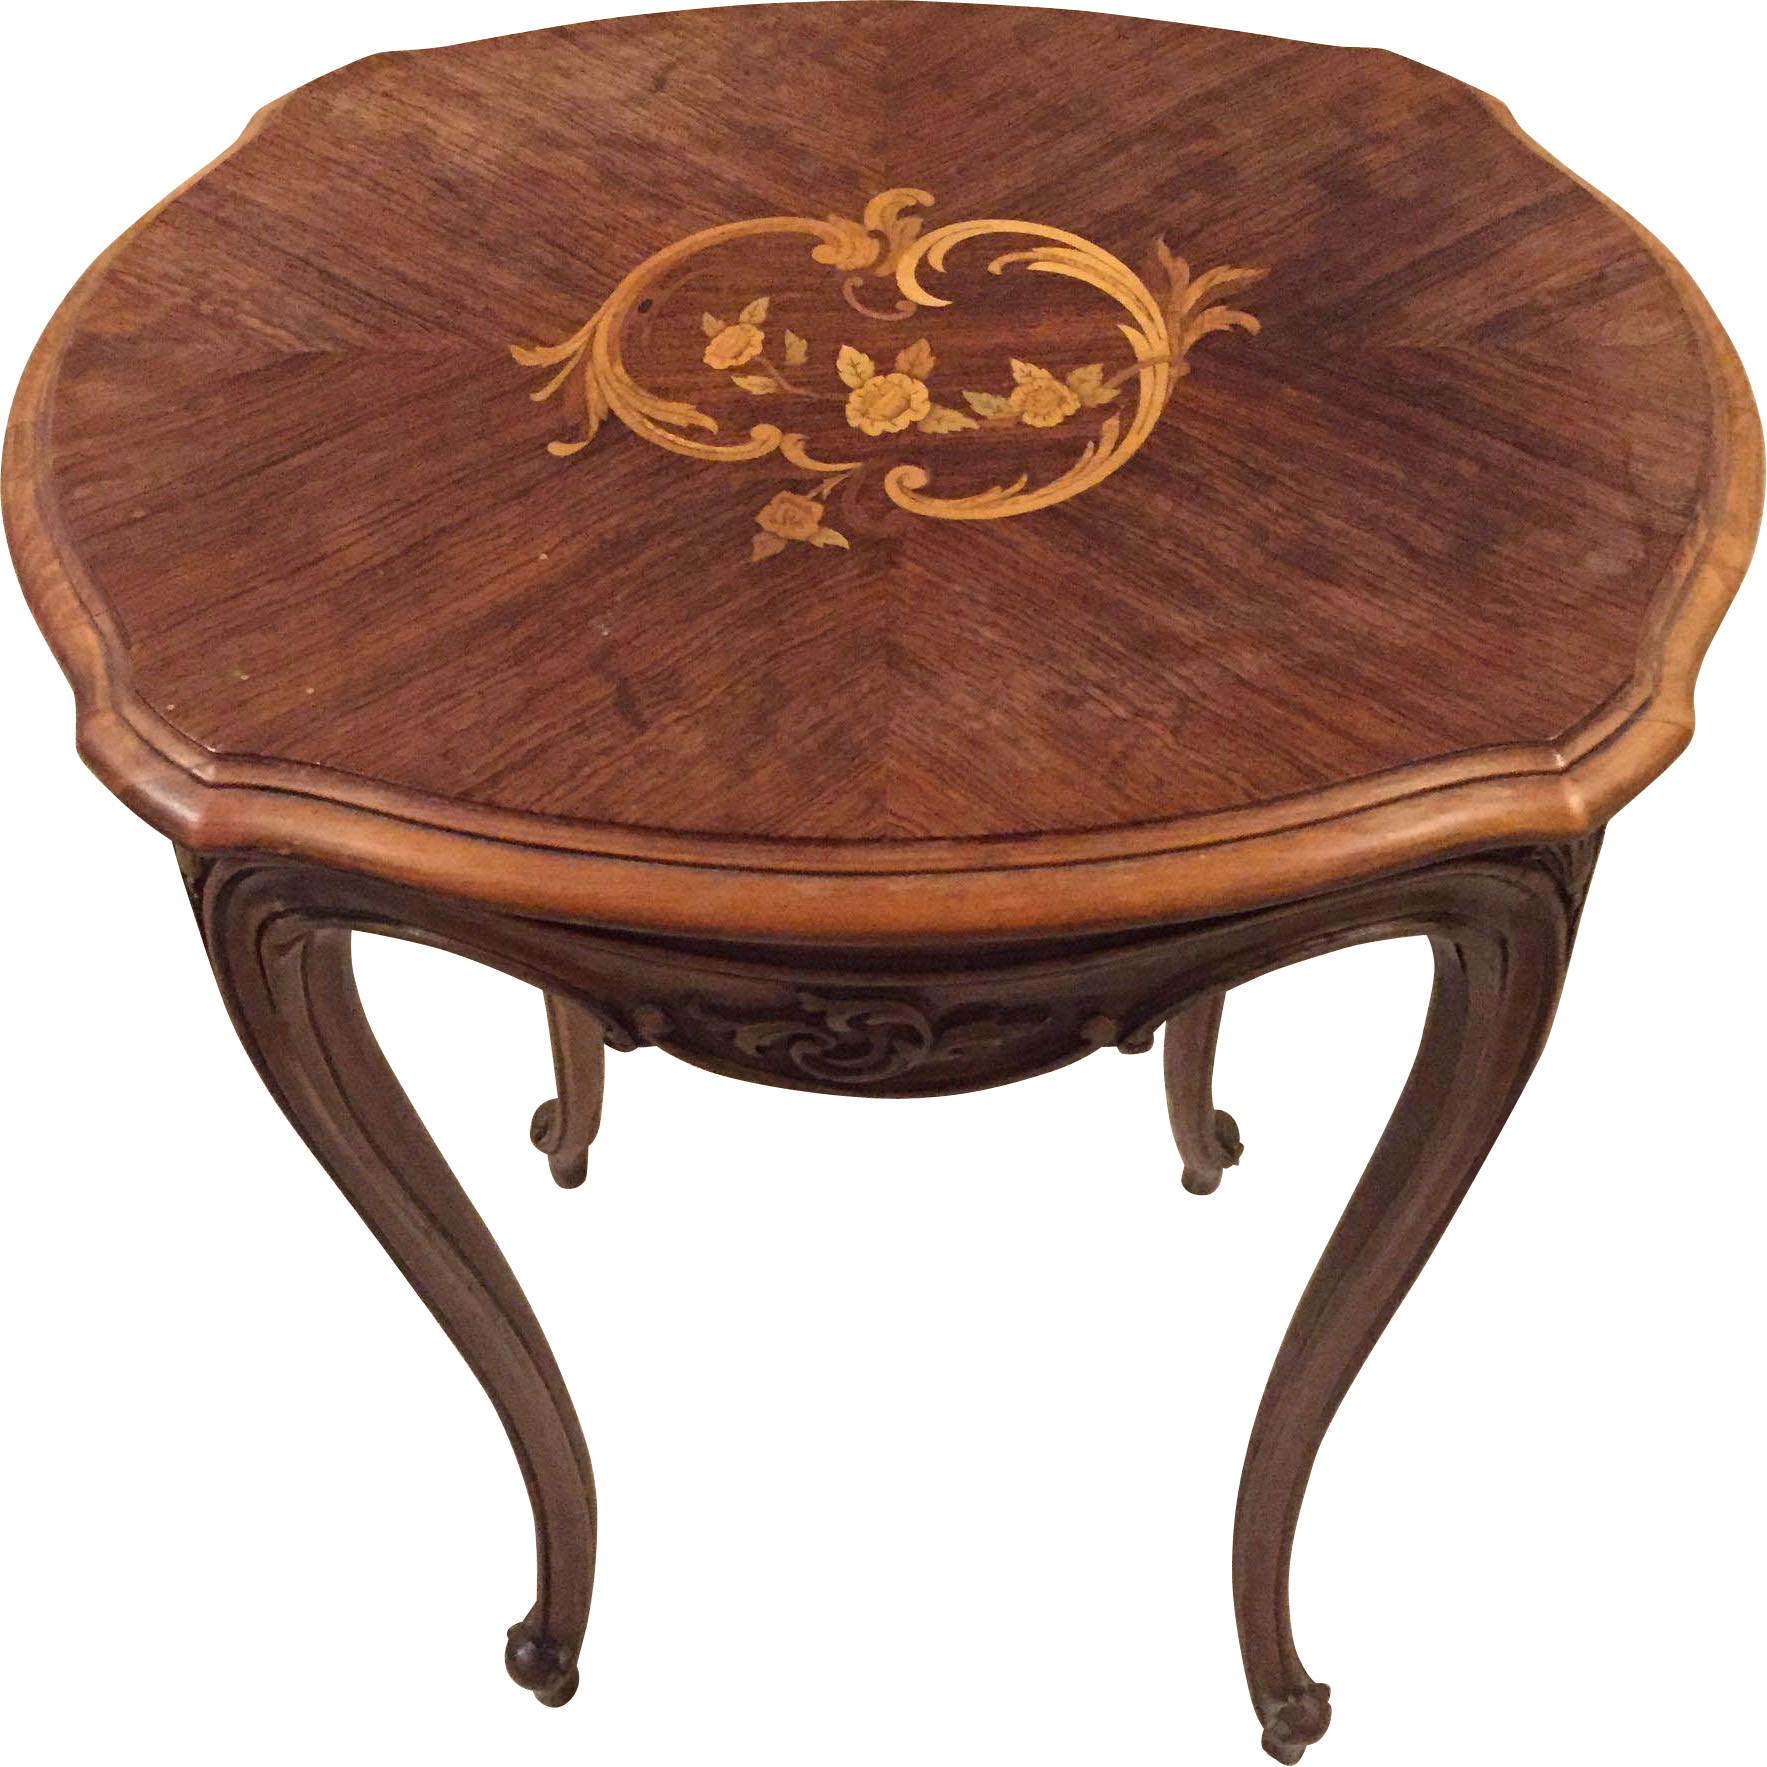 Stunning louis xv style inlaid marquetry table from chappy on ruby lane - Table louis xv ...